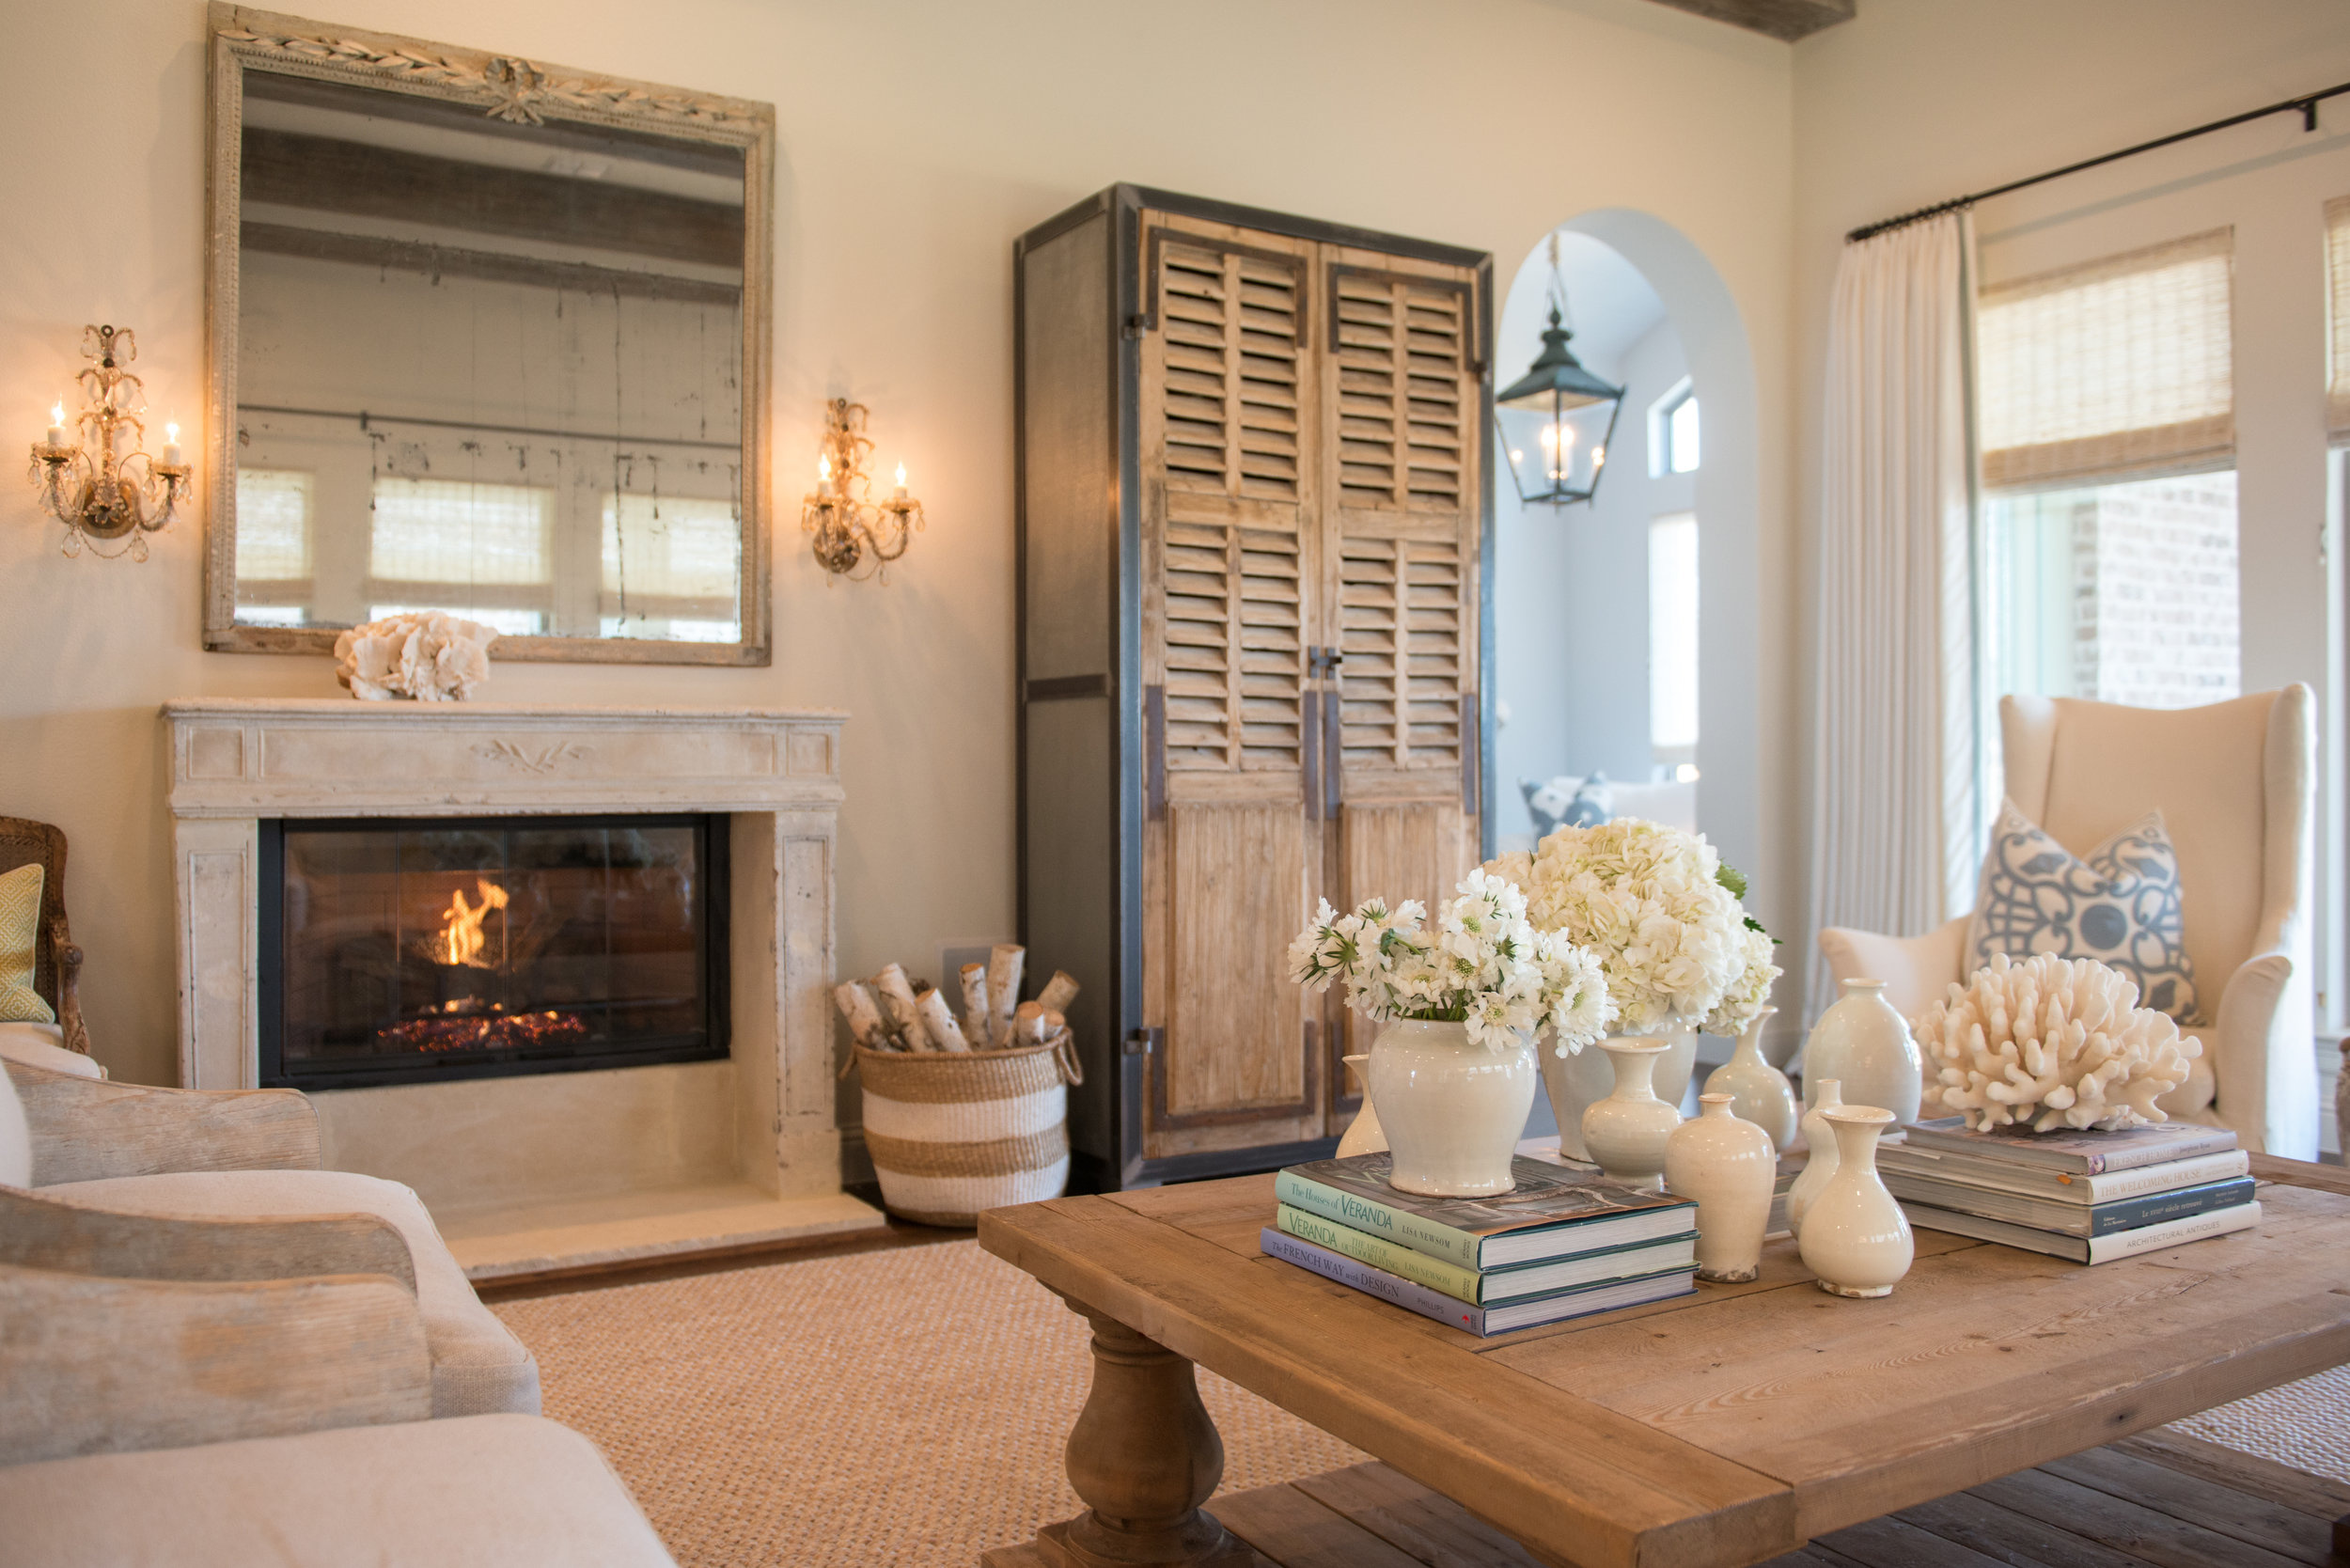 Private Residence |Frisco, Texas - +View Project